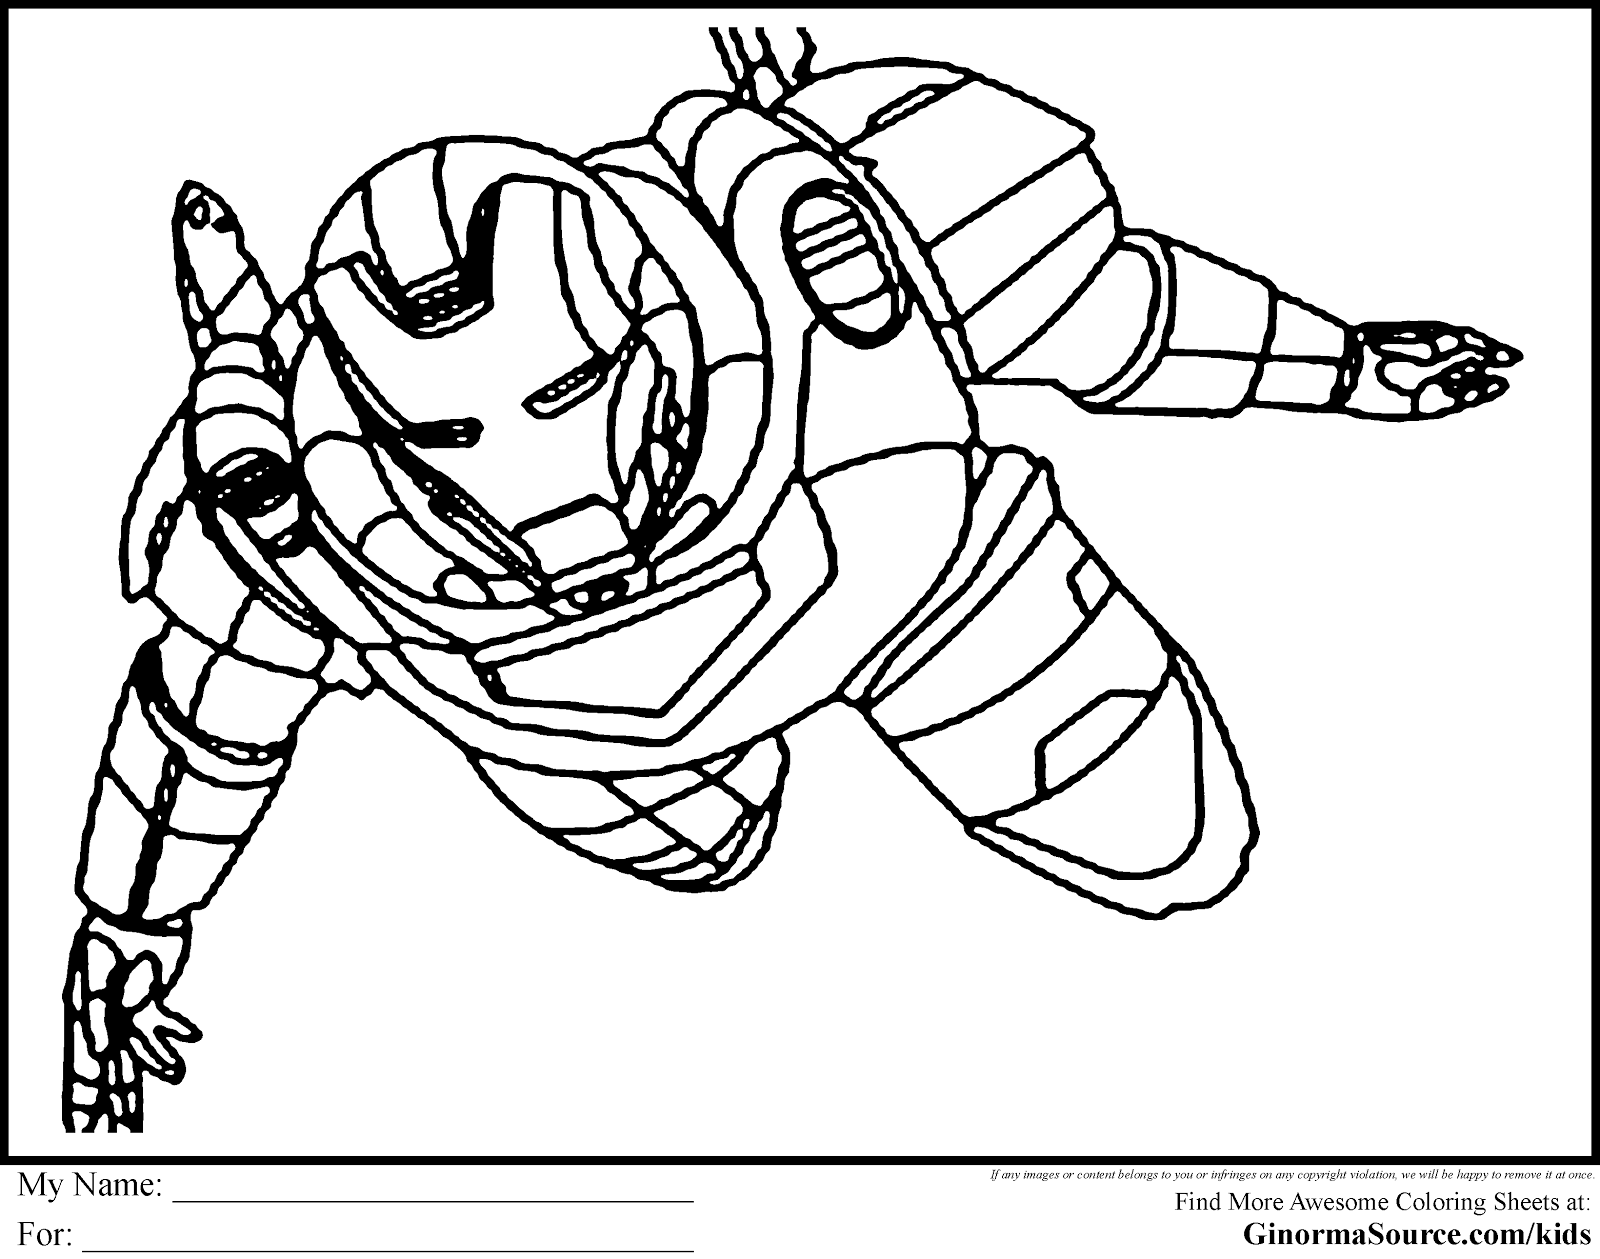 Superheroes coloring pages download